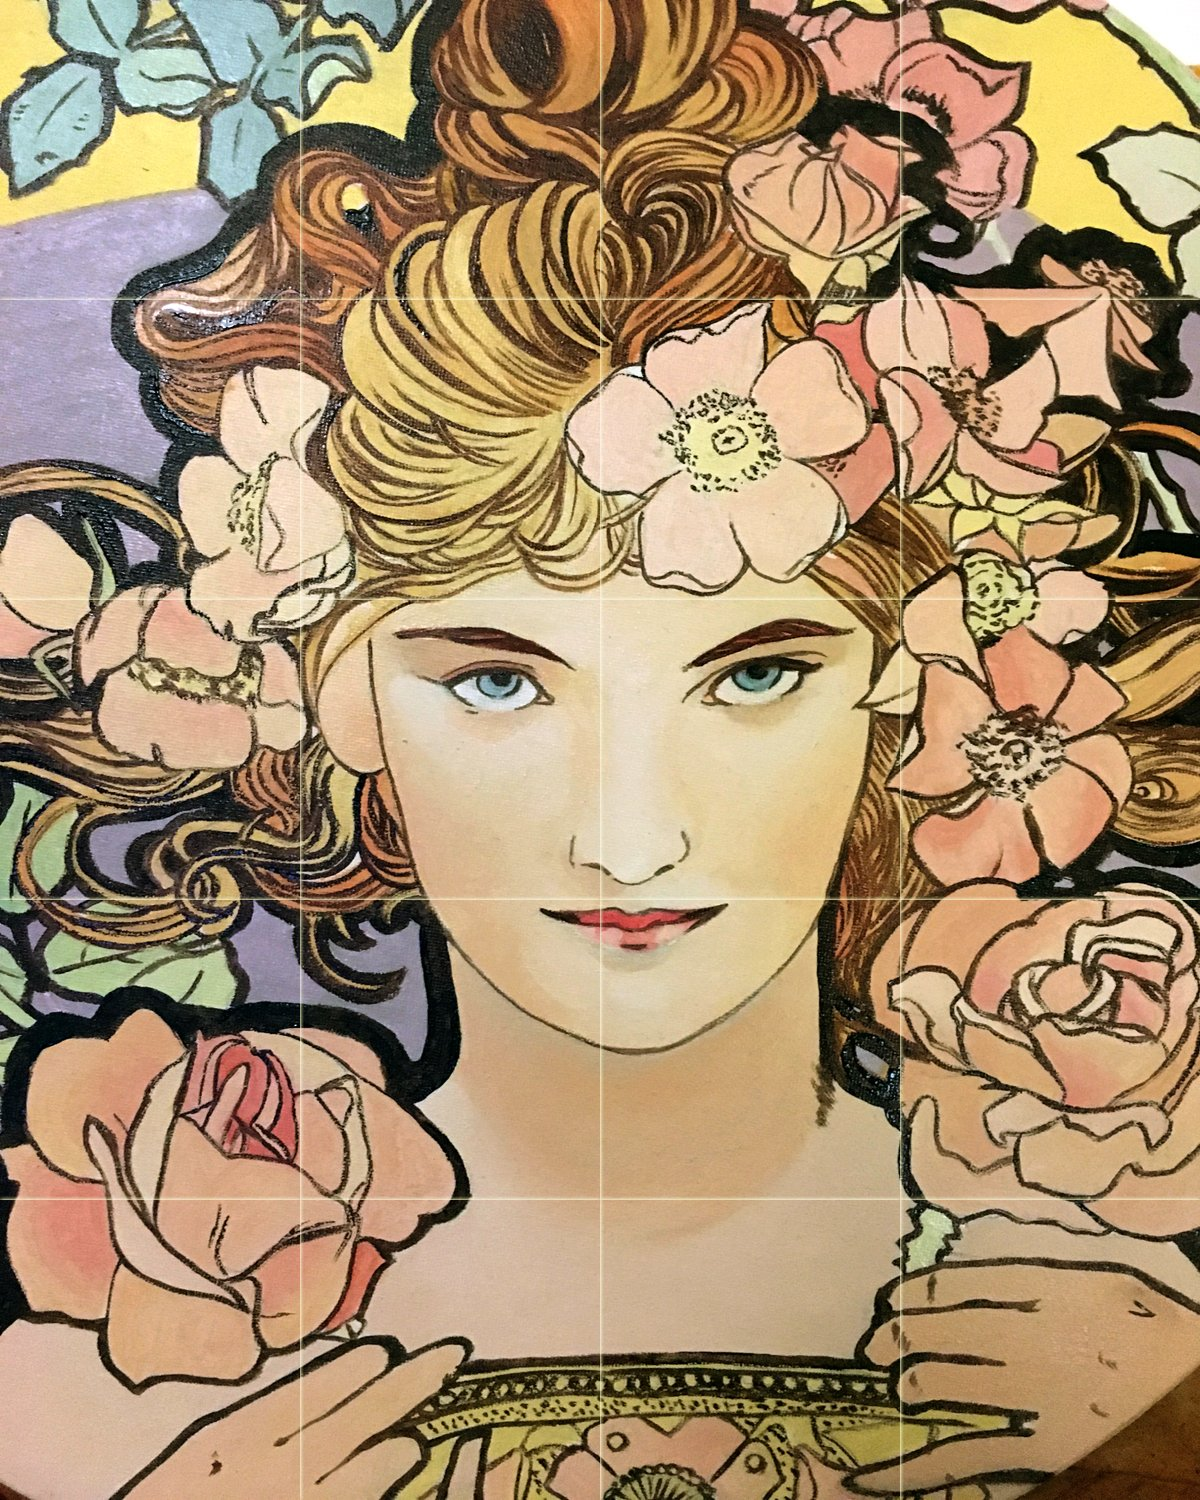 Poster girl portrait flowers by Alphonse Mucha Tile Mural Kitchen Bathroom Wall Backsplash Behind Stove Range Sink Splashback 4x5 6'' Marble, Matte by FlekmanArt